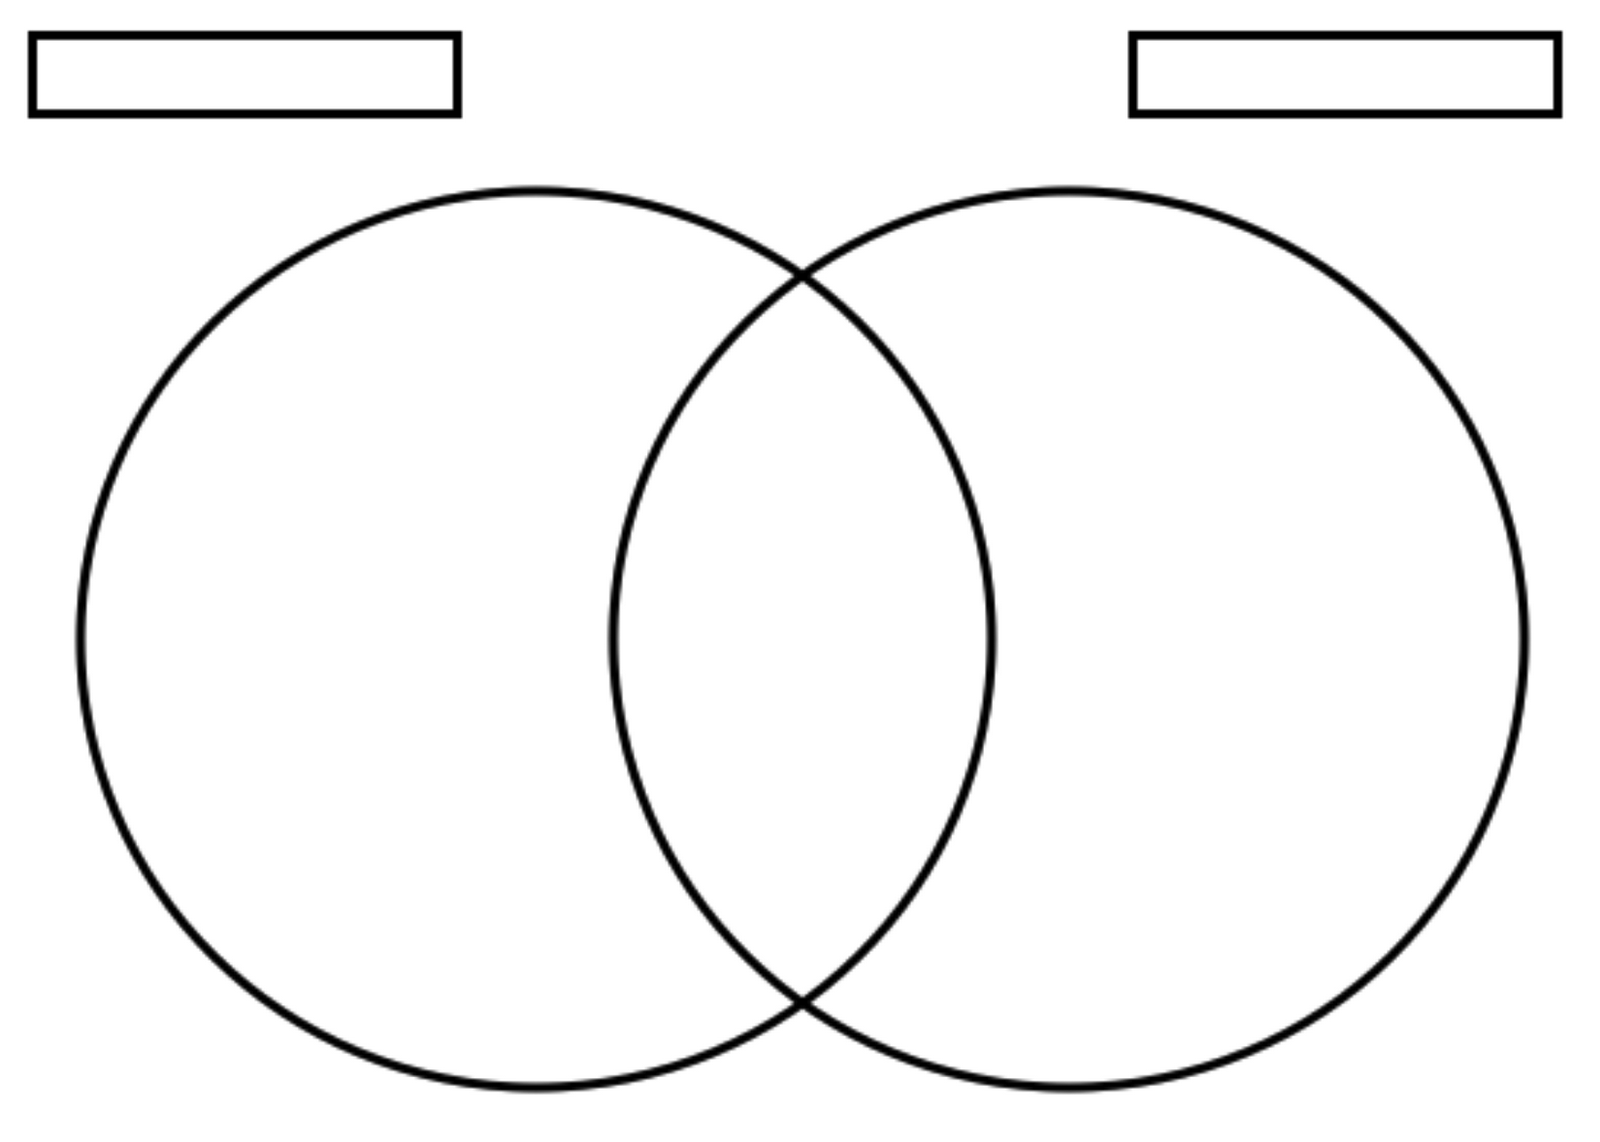 venn diagram template   unmasa dalhavenn diagram template